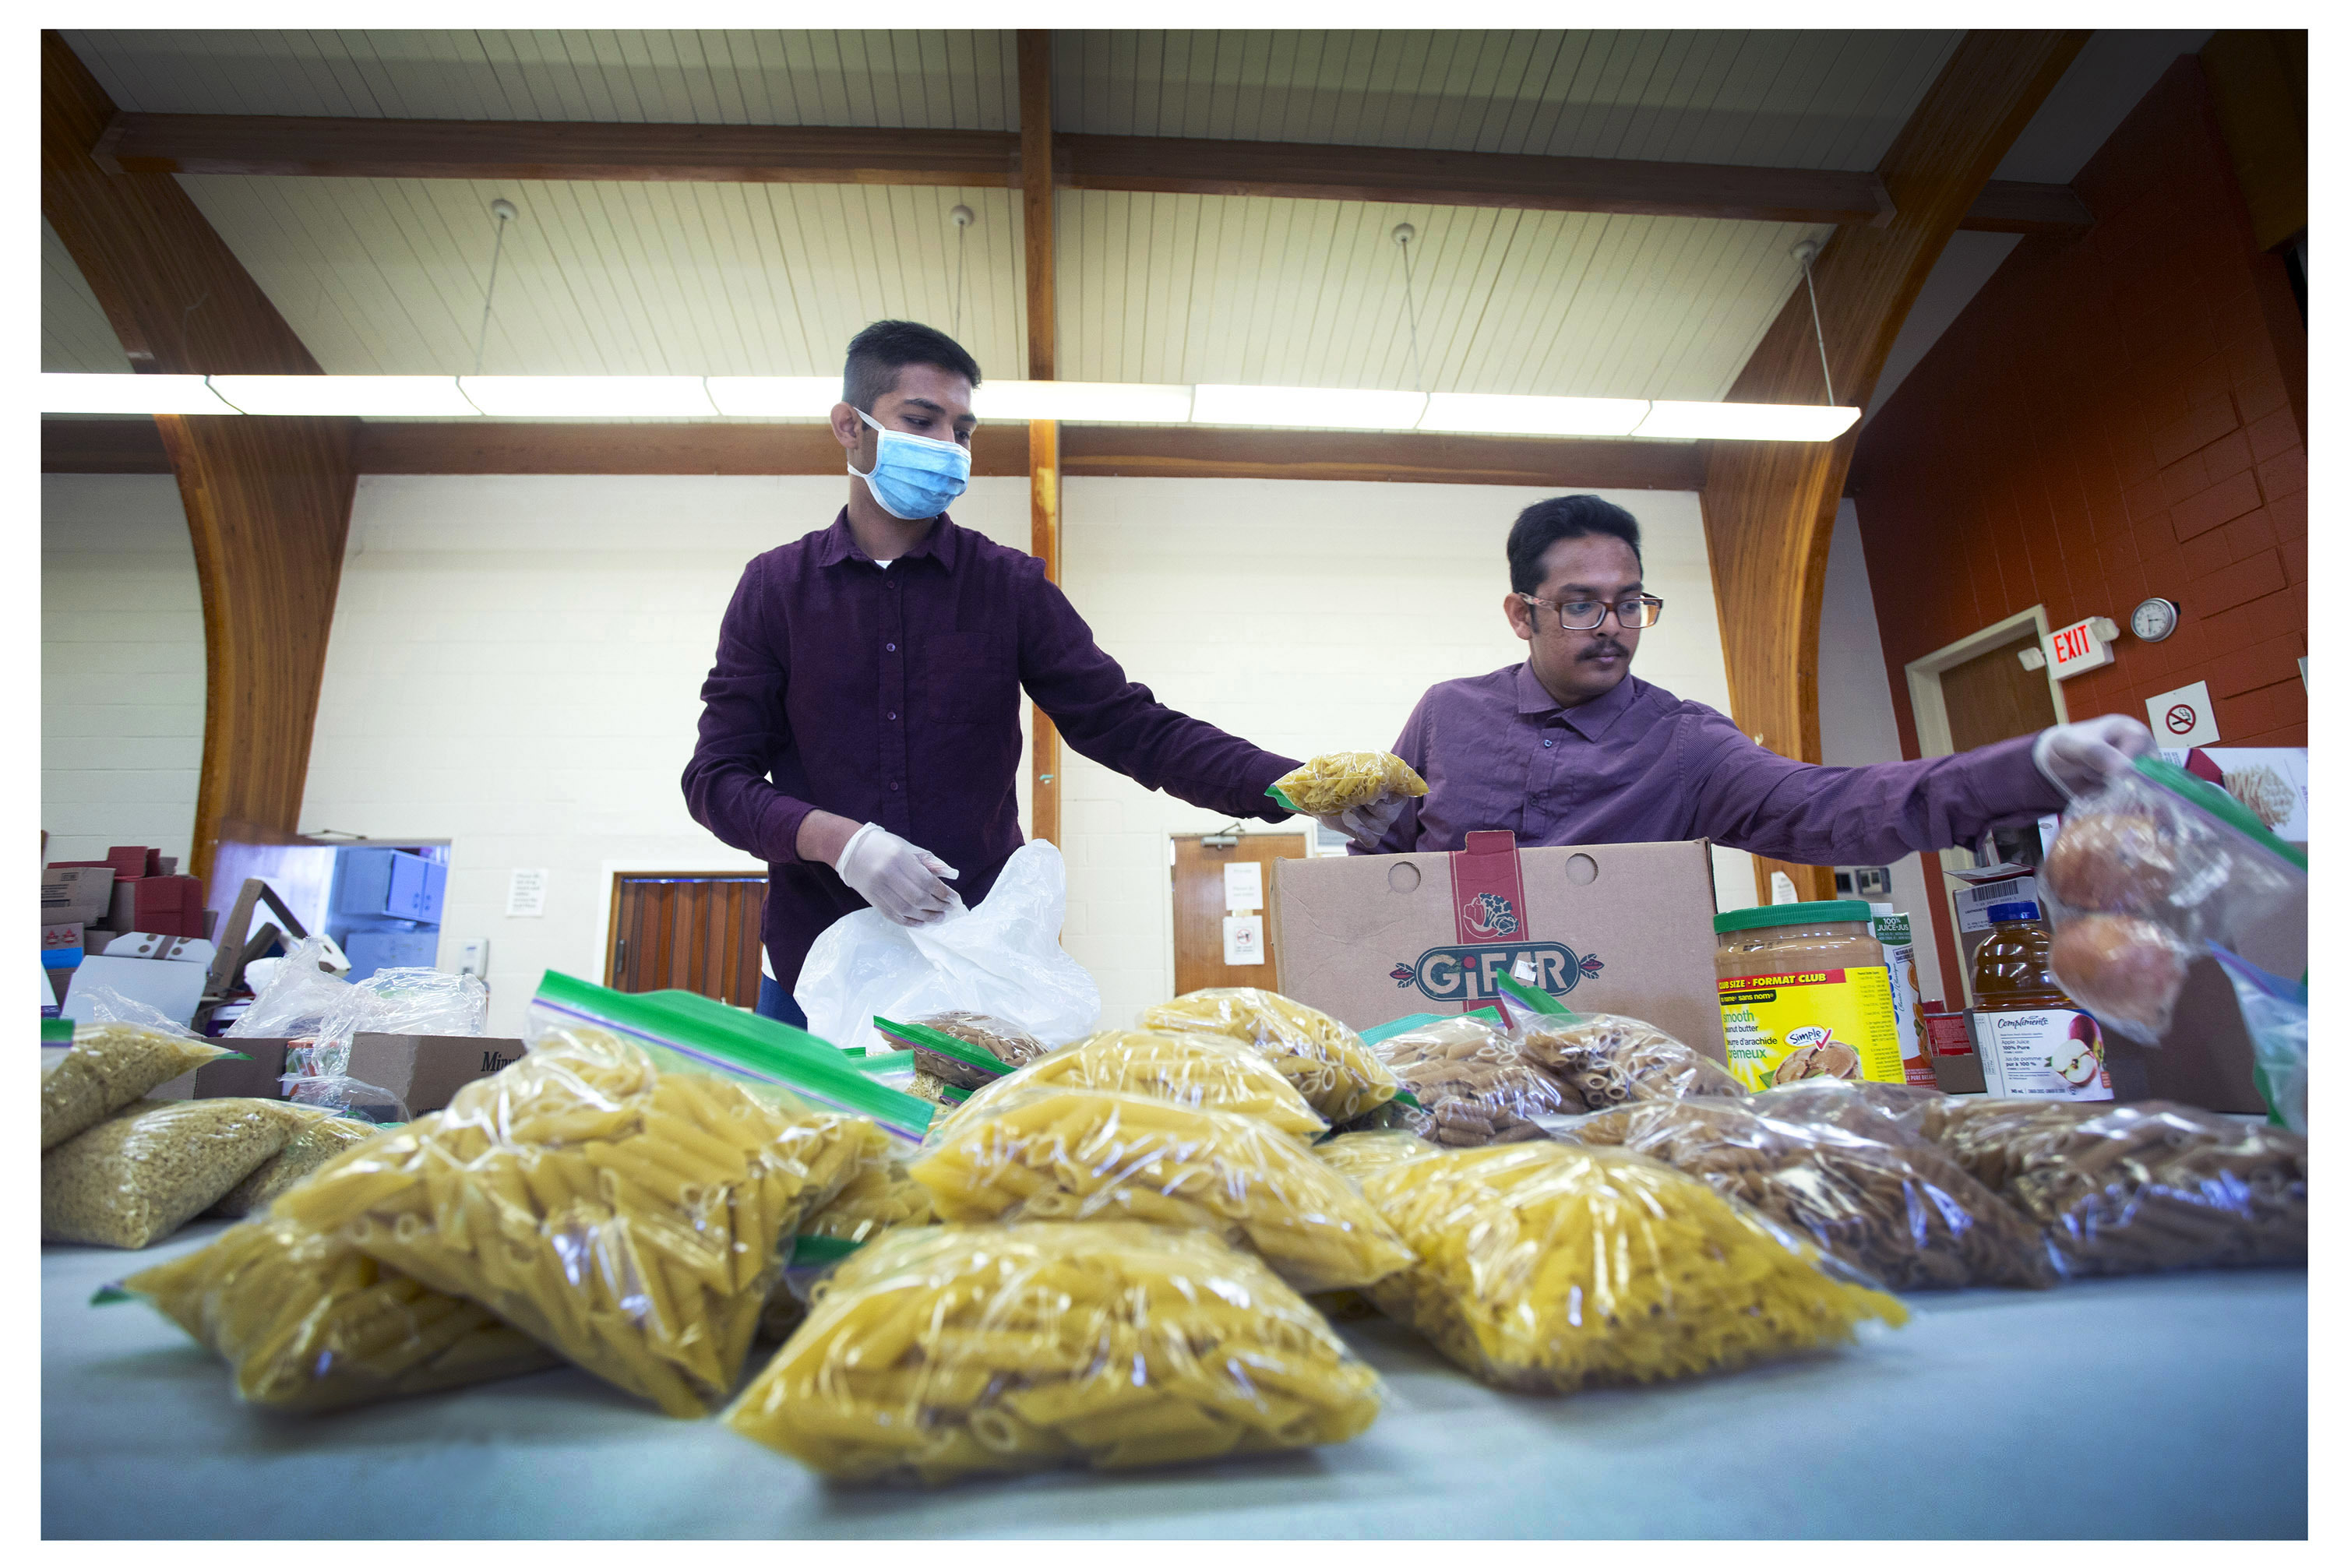 Food NL volunteers Mahmudiel Islam Shourov and Adid Rahman prepare hampers for distribution. (Photo by Paul Daly)